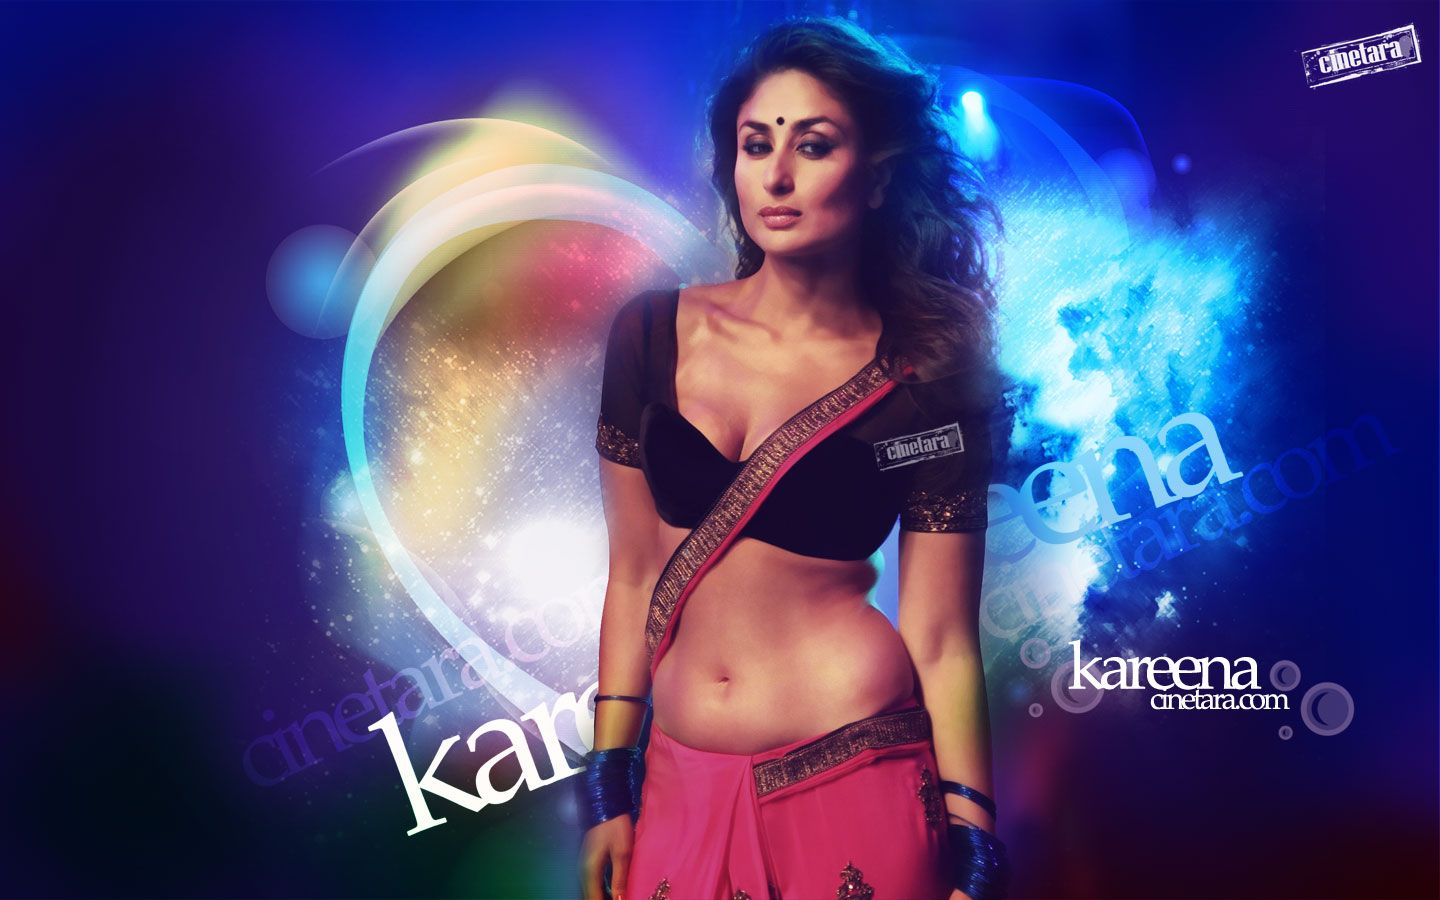 kareena kapoor hot pic from heoine movie, kareena kapoor hot in